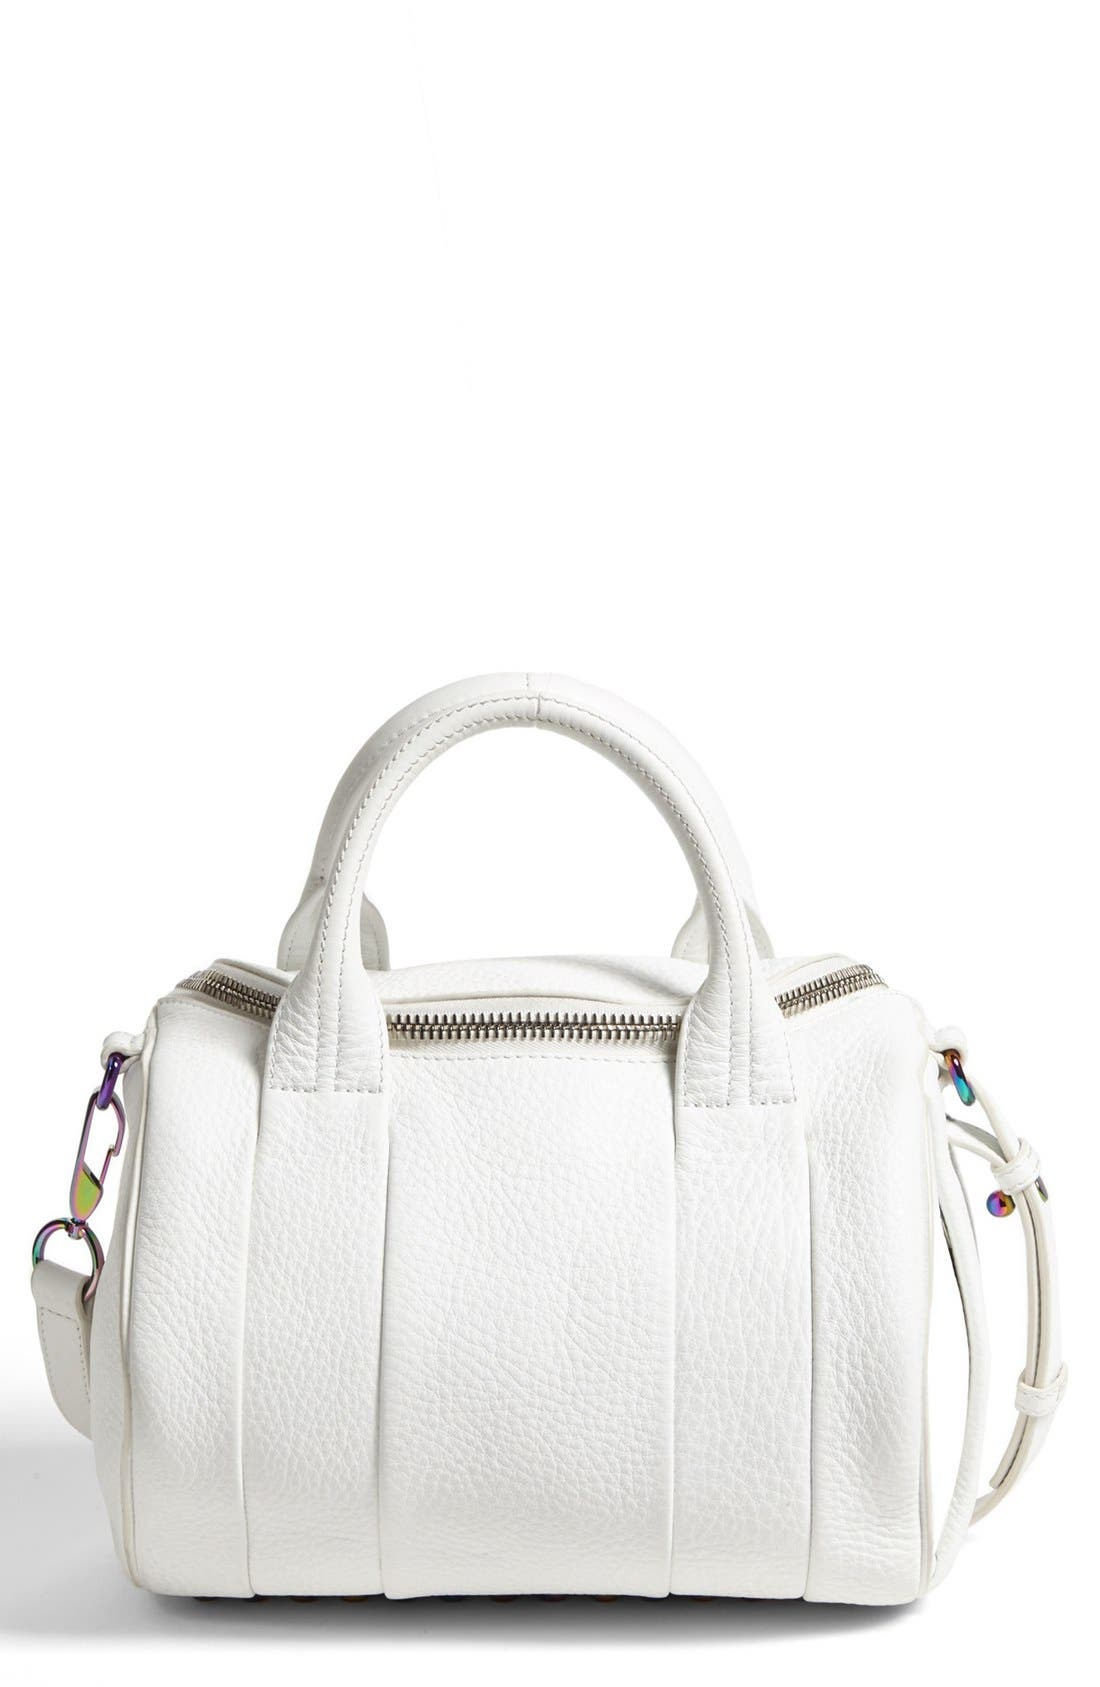 Alternate Image 1 Selected - Alexander Wang 'Rockie - Iridescent' Crossbody Satchel